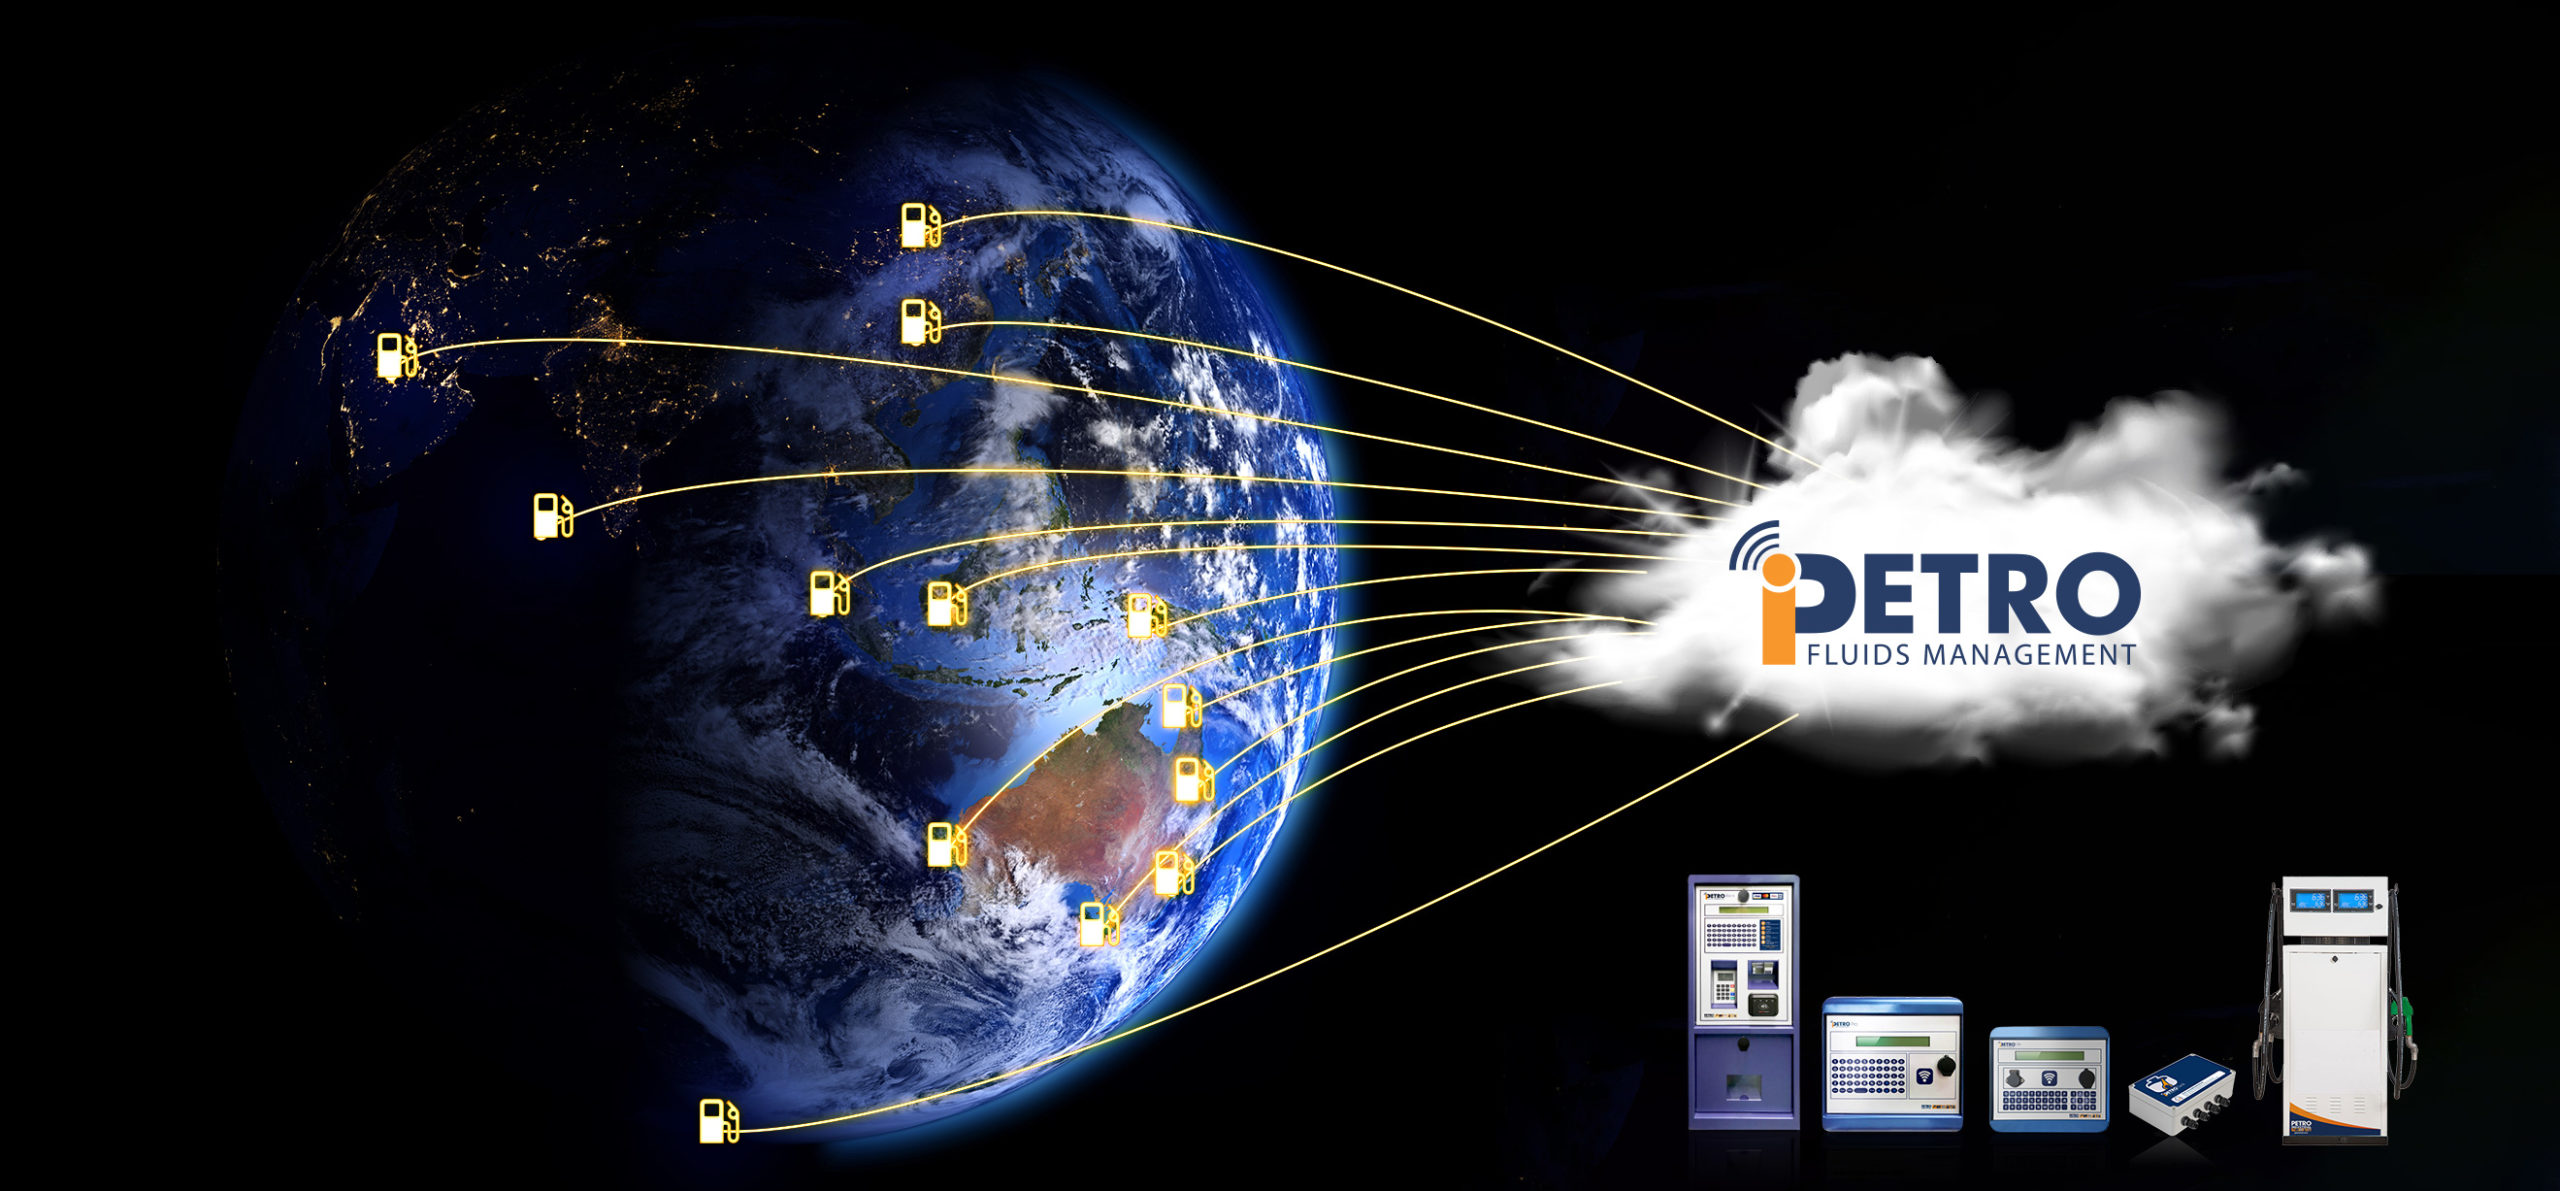 iPETRO Is the Future of Fluids Management Technology - Fuel management systems Australia